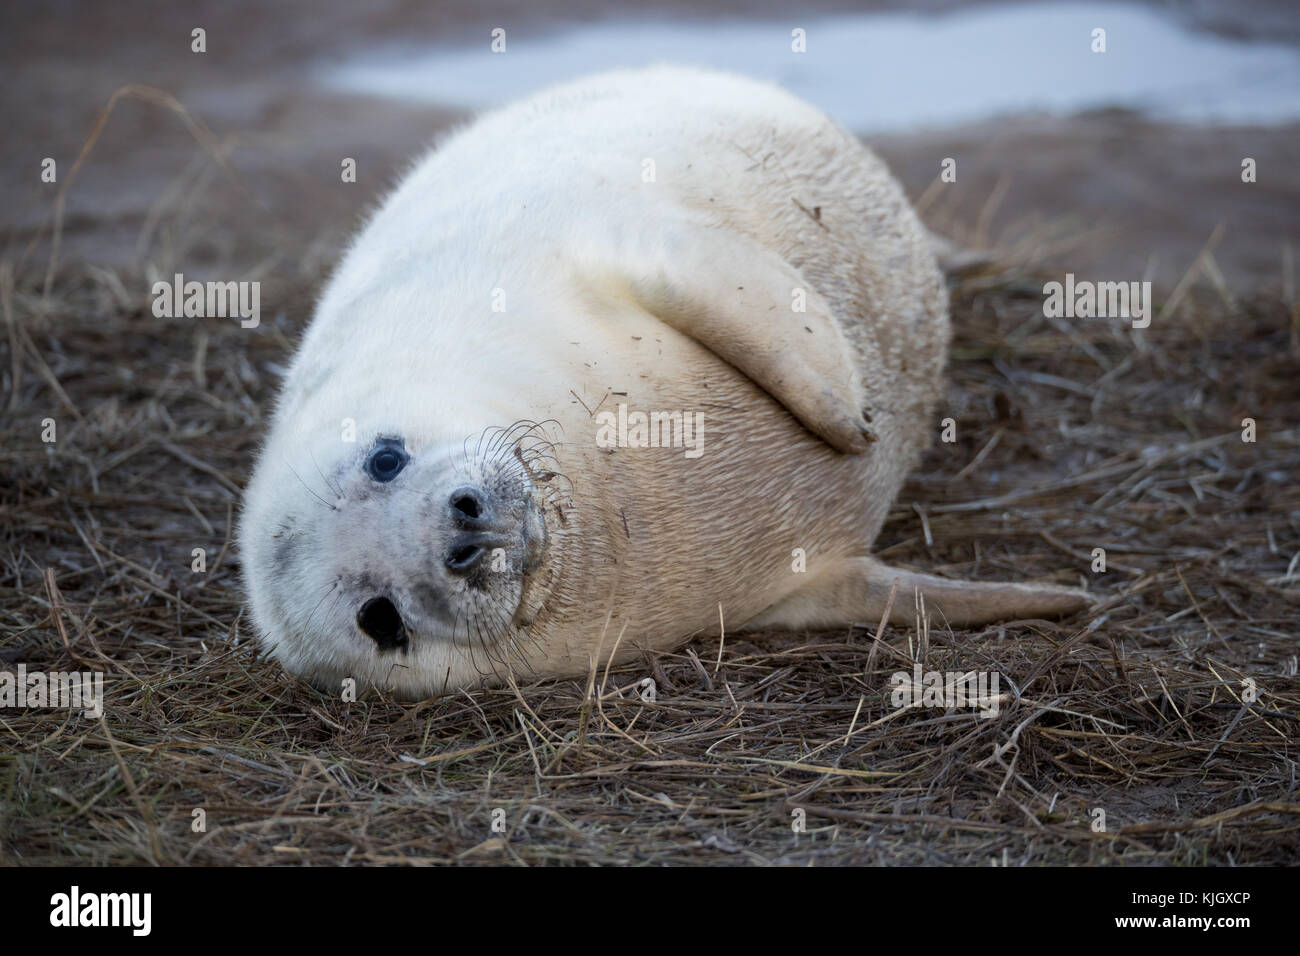 Donna Nook Nature Reserve, Lincolnshire, UK. 23rd November, 2017. Atlantic Grey Seals come ashore for the annual - Stock Image